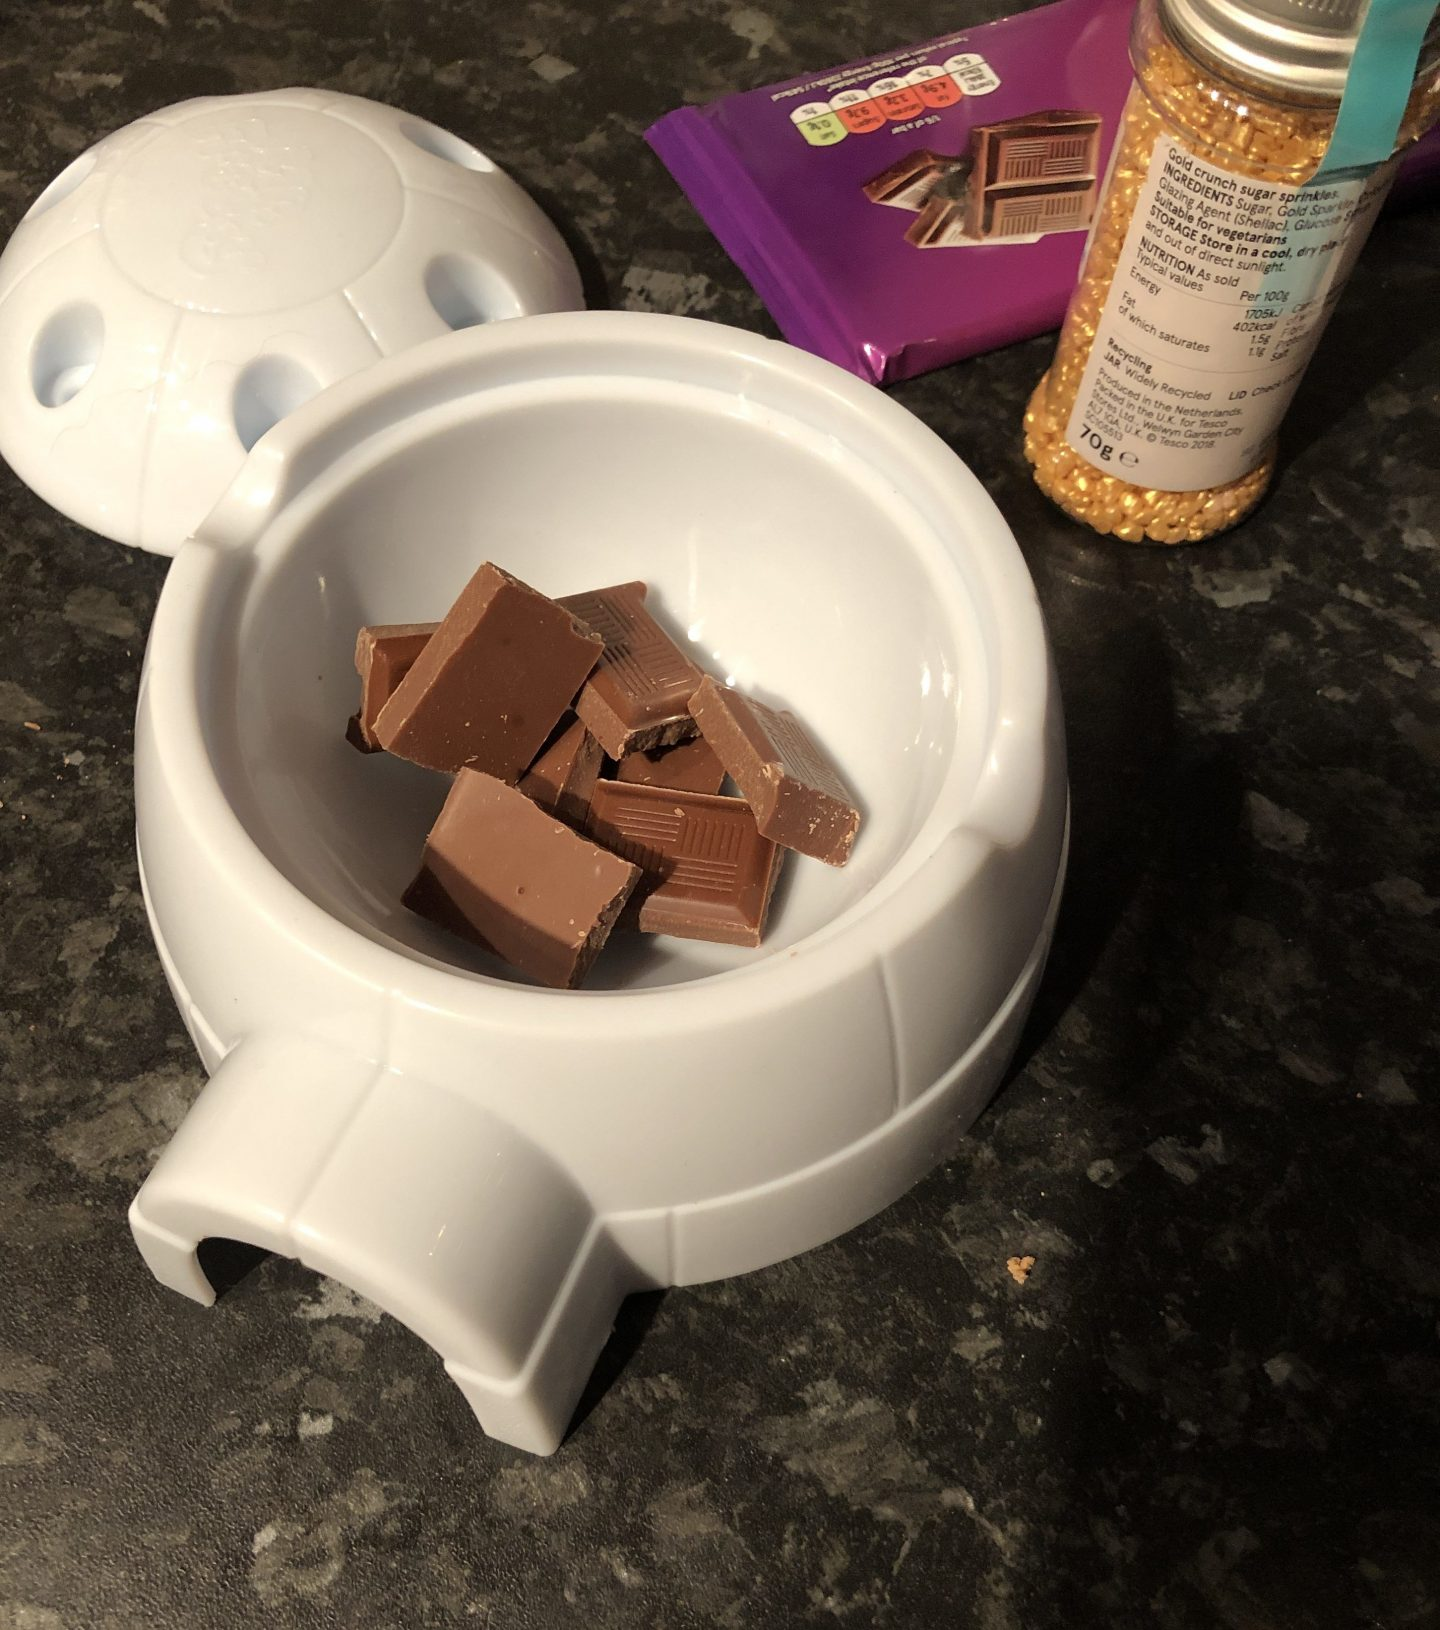 break chocolate into the igloo of the mr frosty choc ice maker before melting it in the microwave